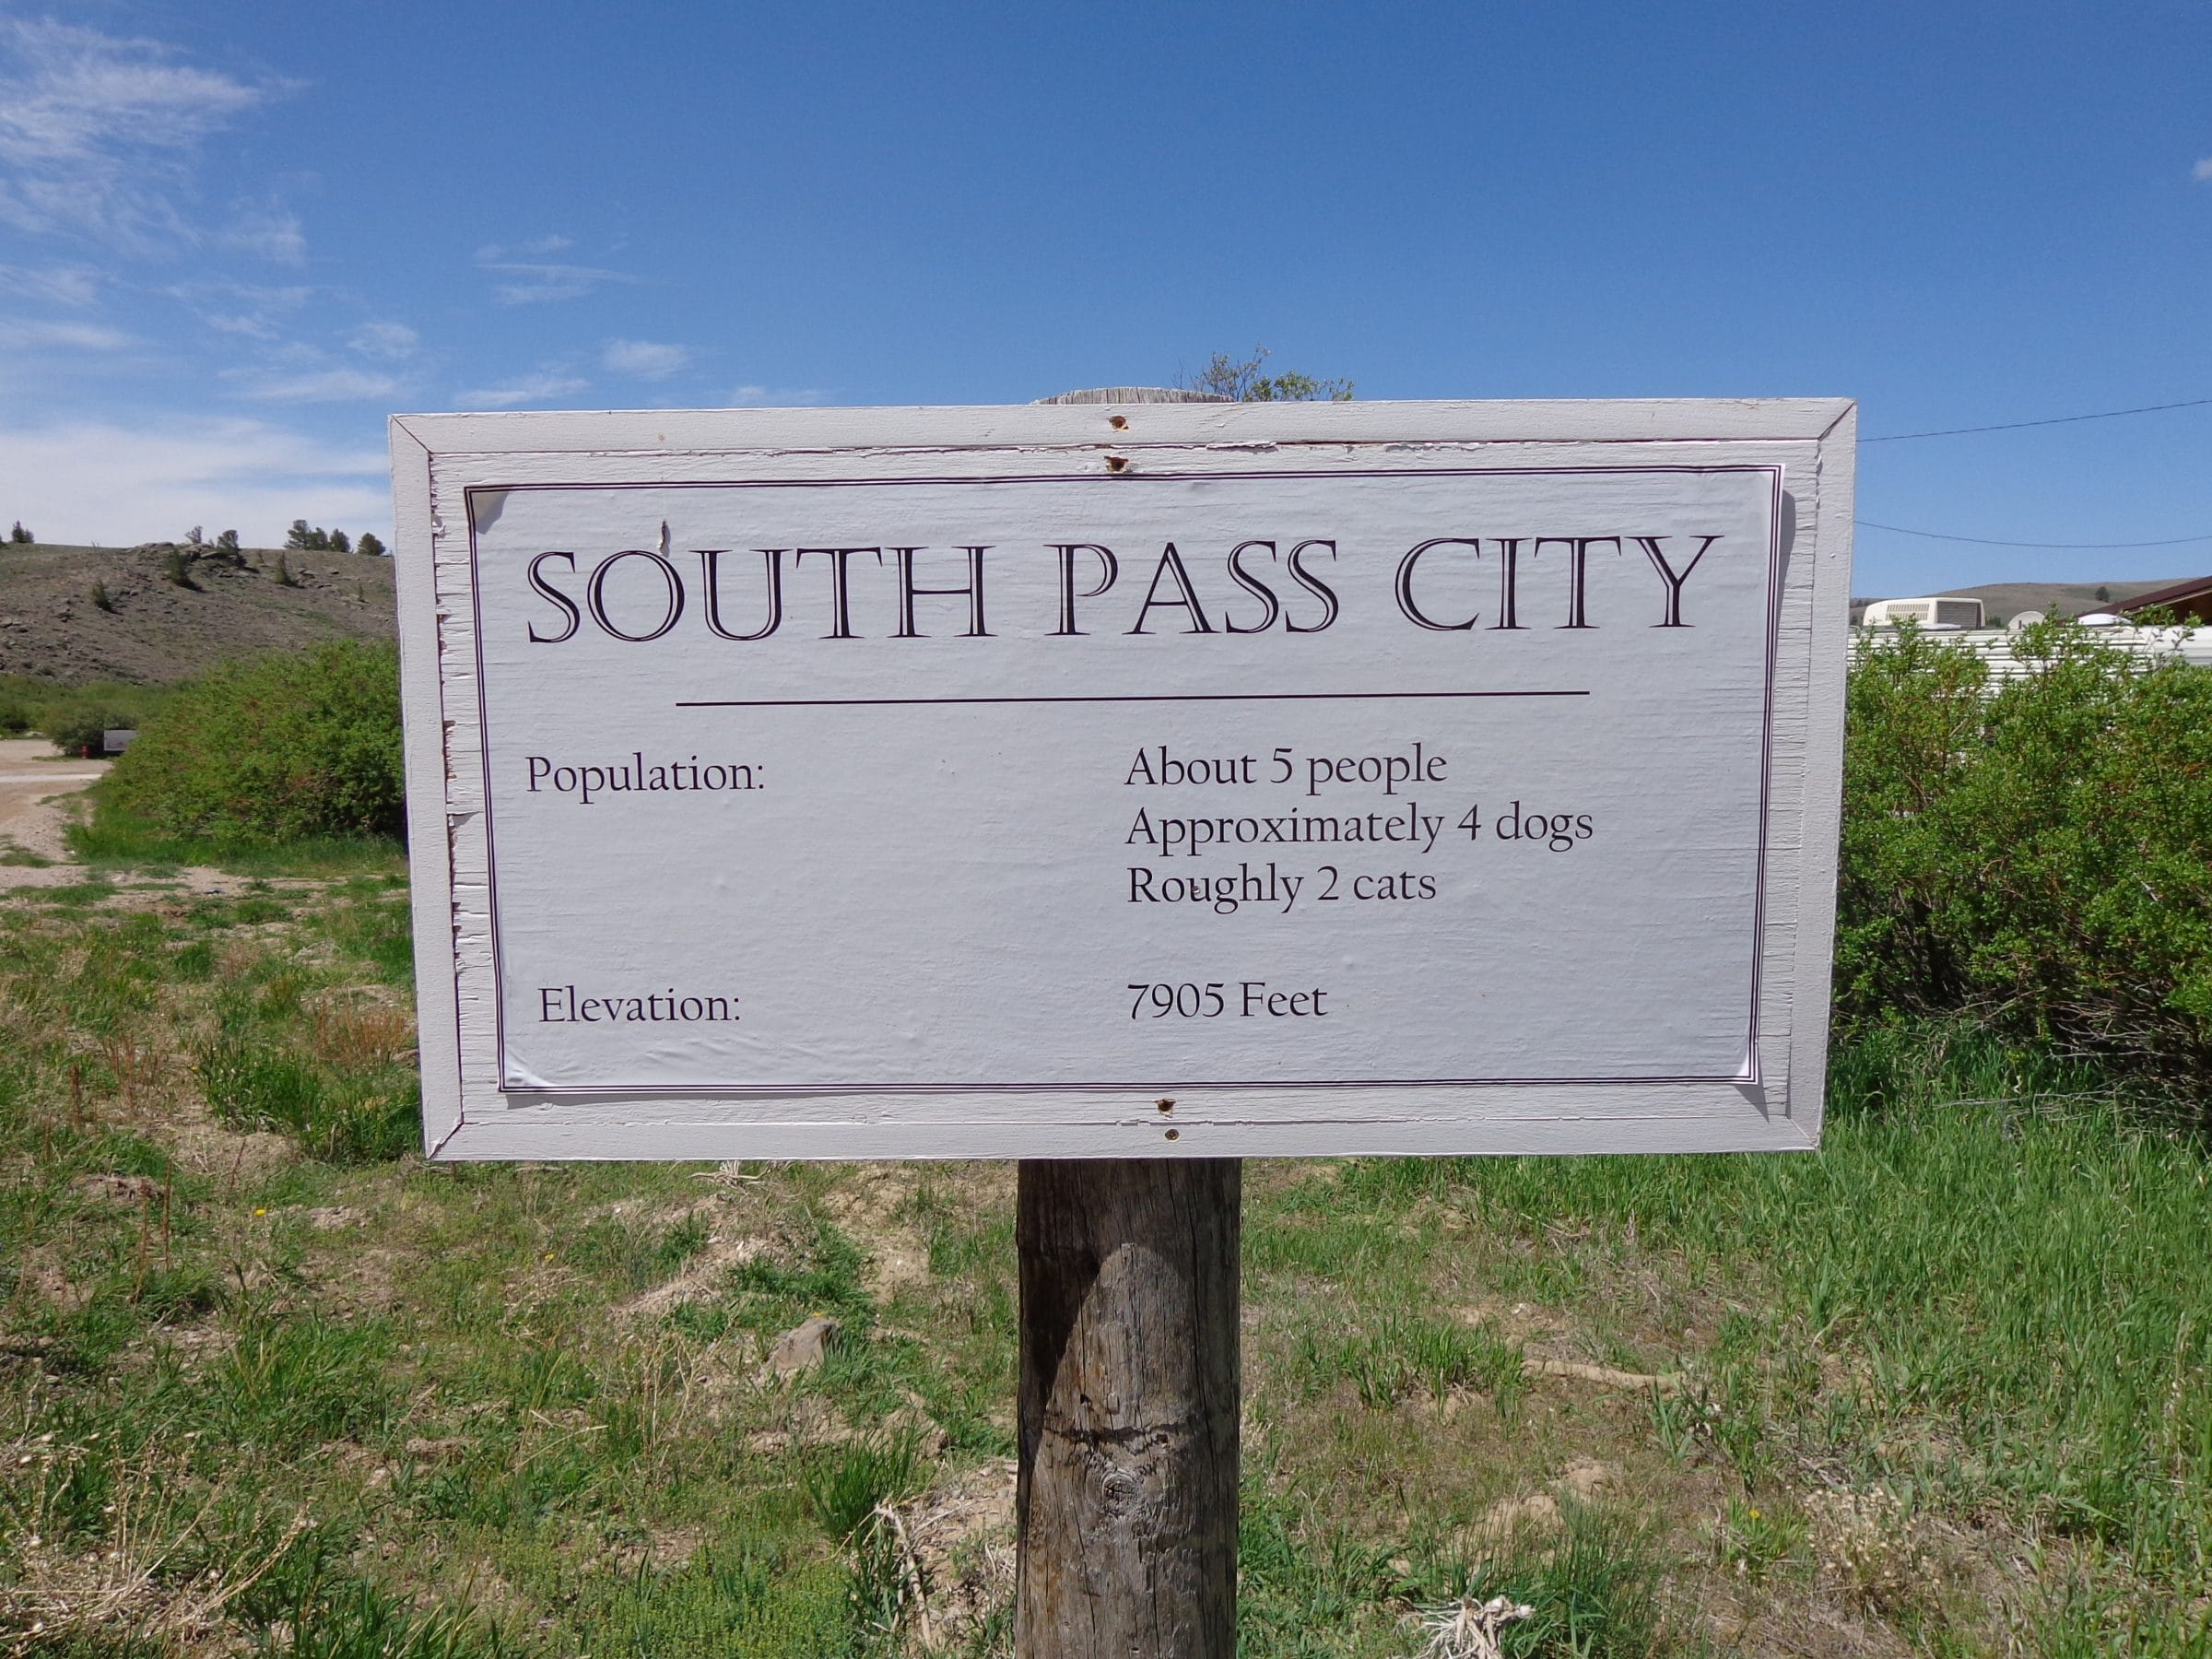 Welkom in South Pass 'City'